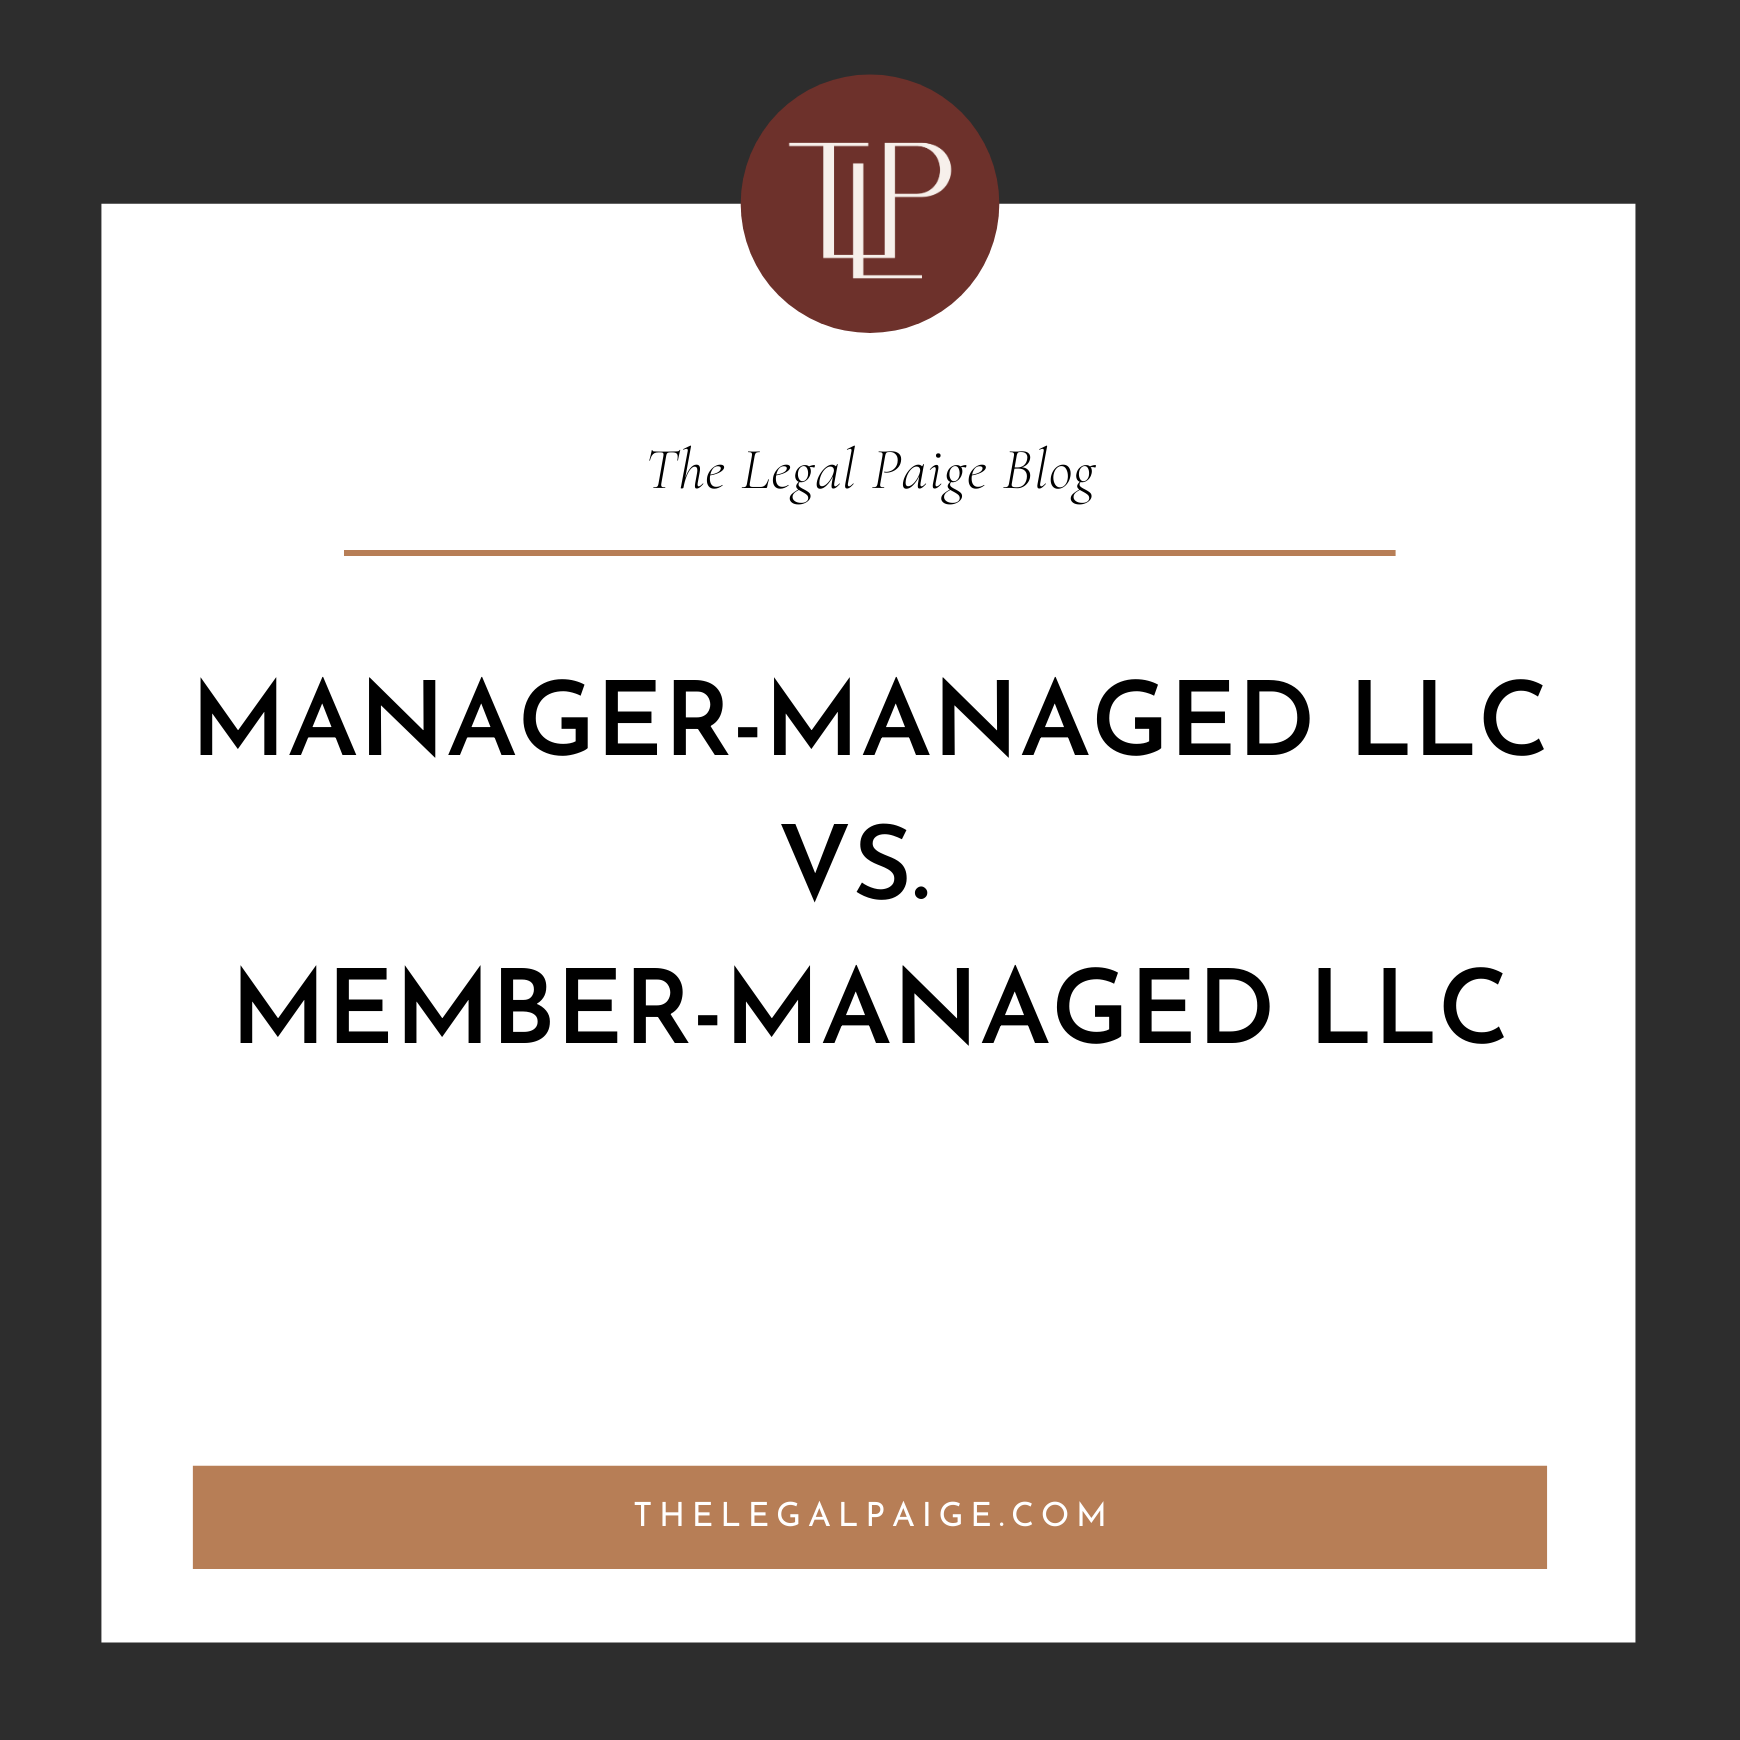 Manager-Managed LLC vs. Member-Managed LLC